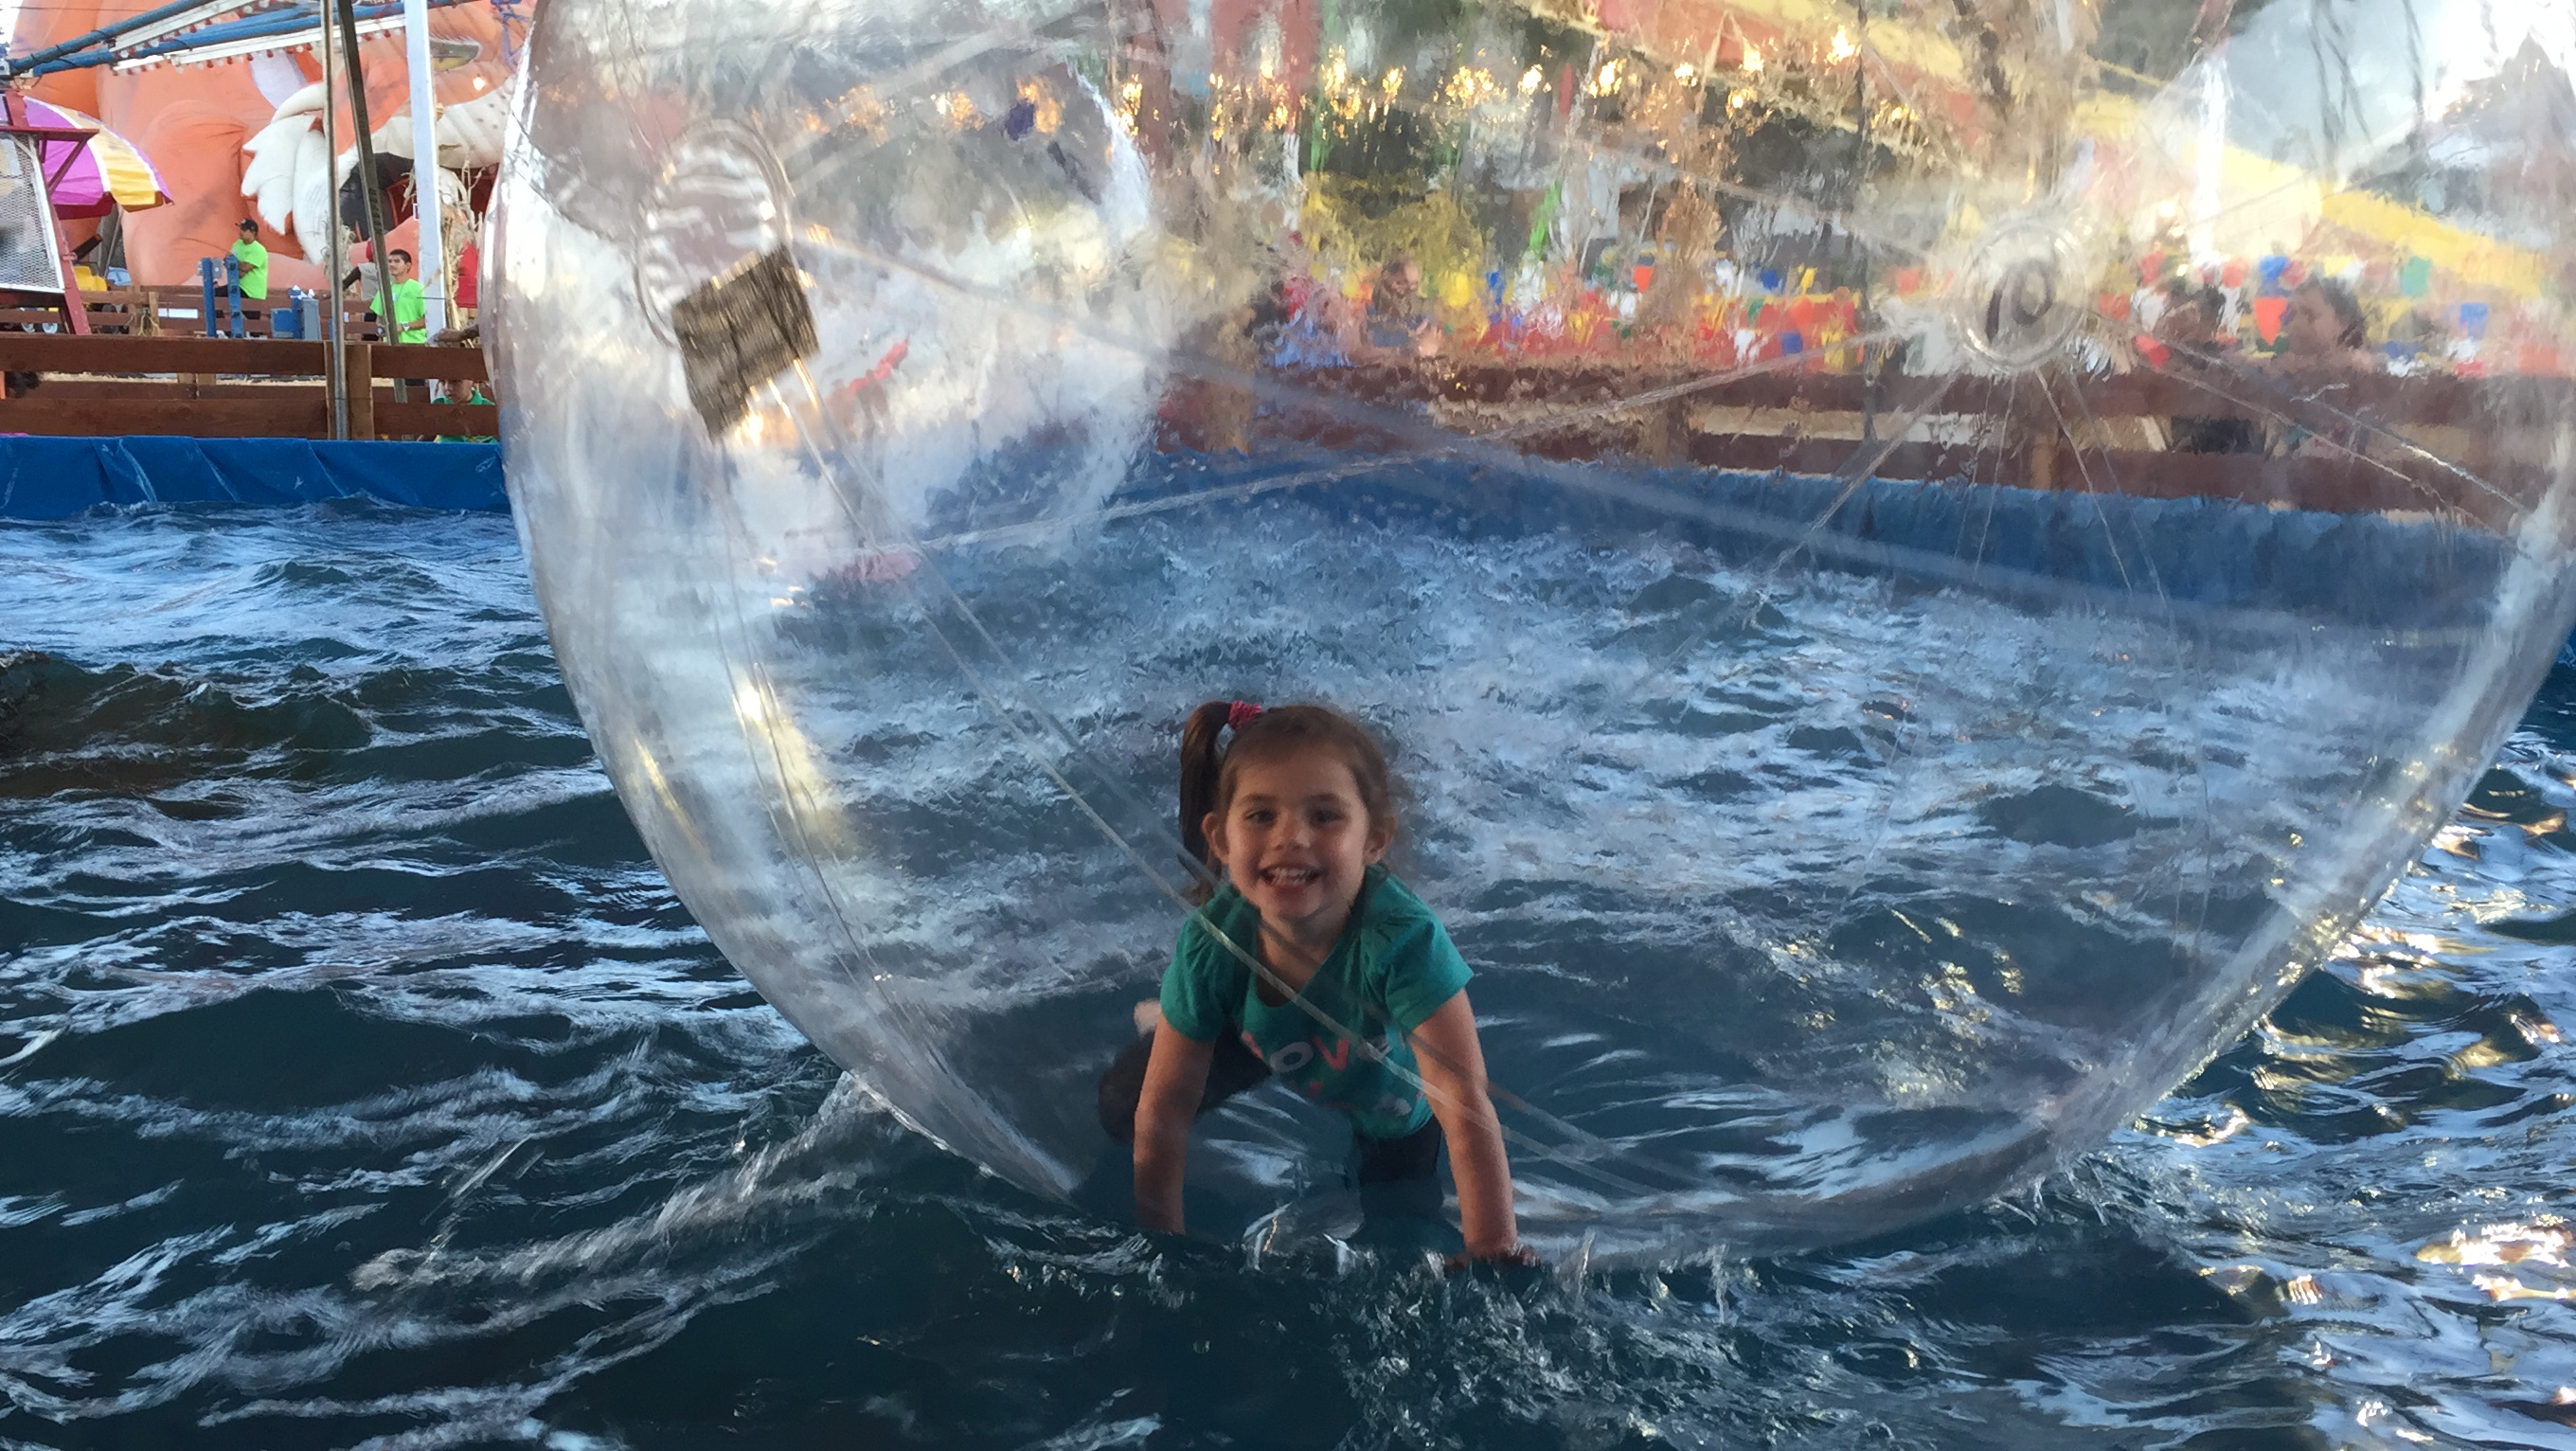 evangelina in a bubble